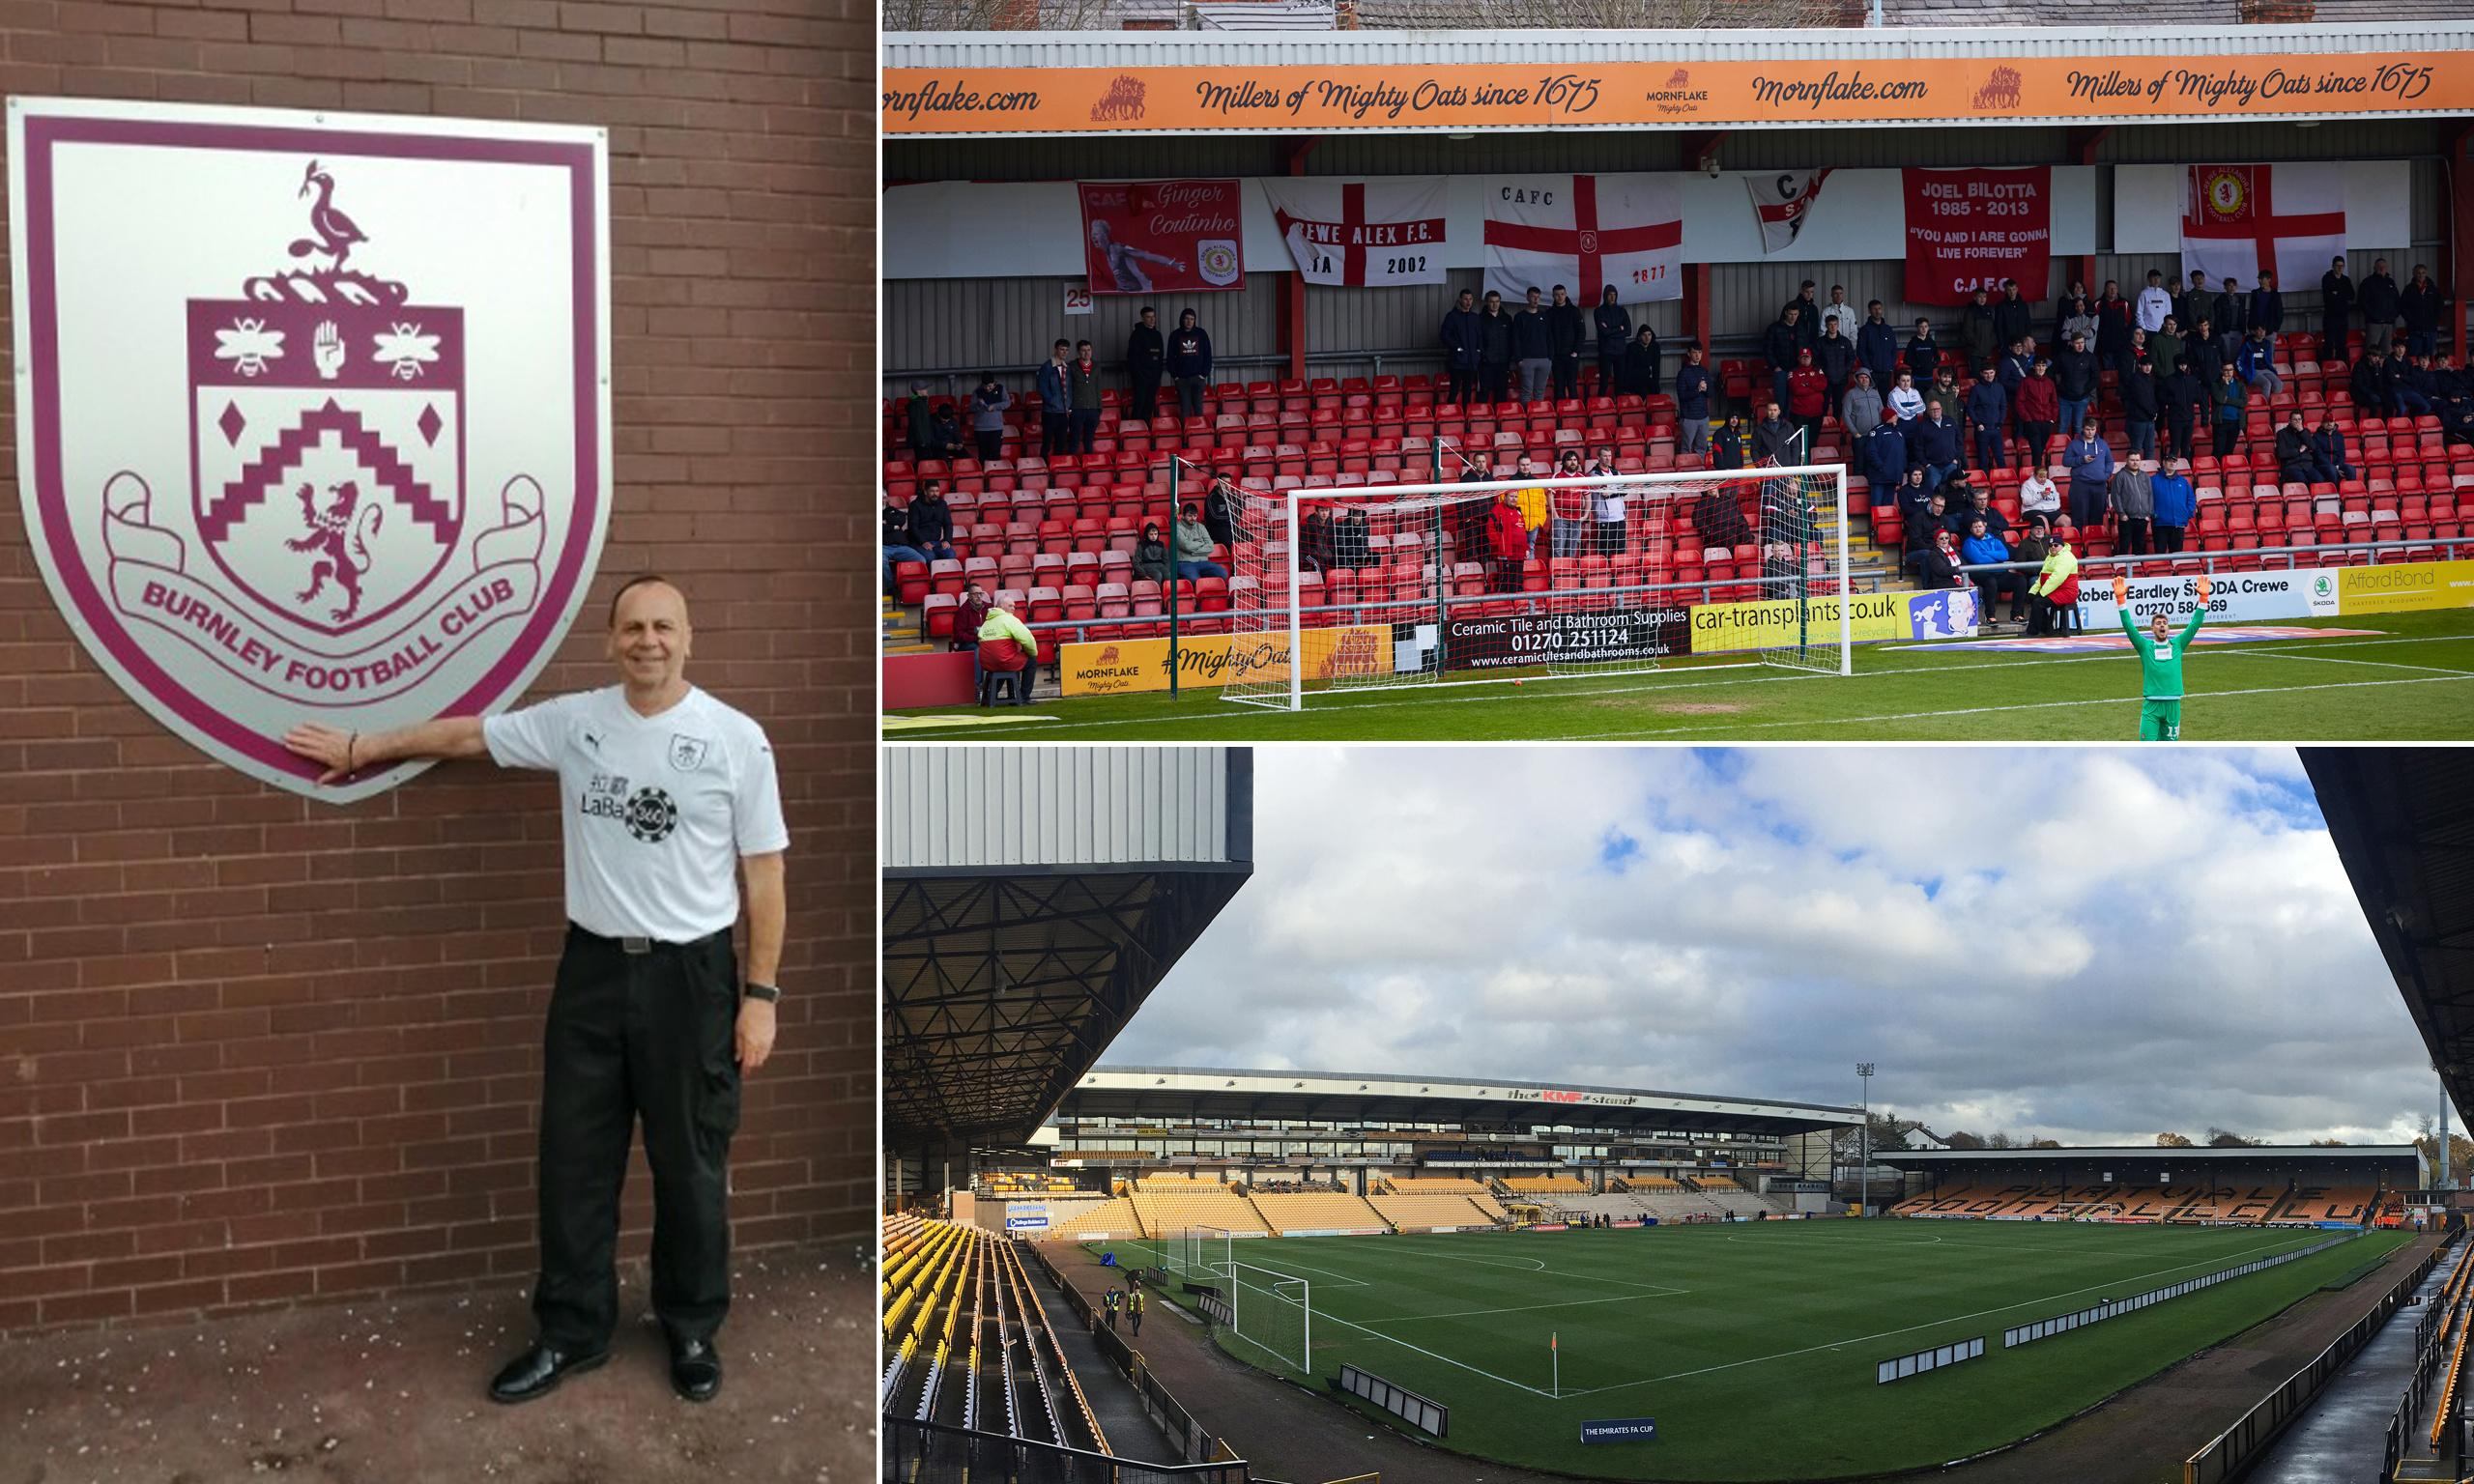 I last missed a Burnley game in 1974, so two games at once is no obstacle